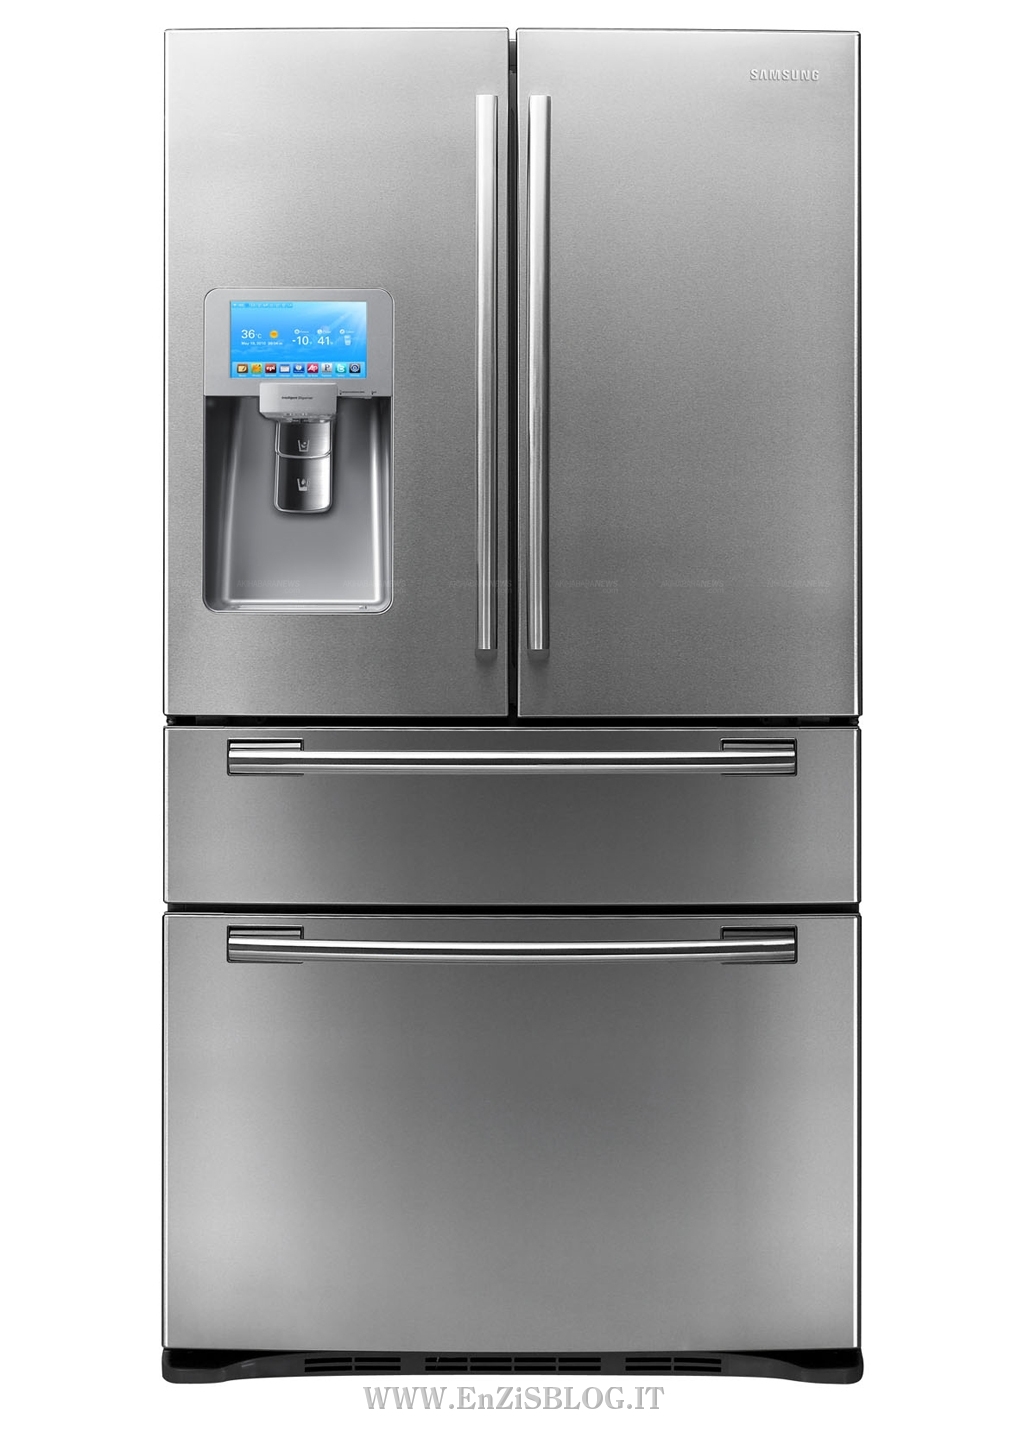 Refrigerator Wi-Fi and Touch Screen by Samsung | Home Inutility ...